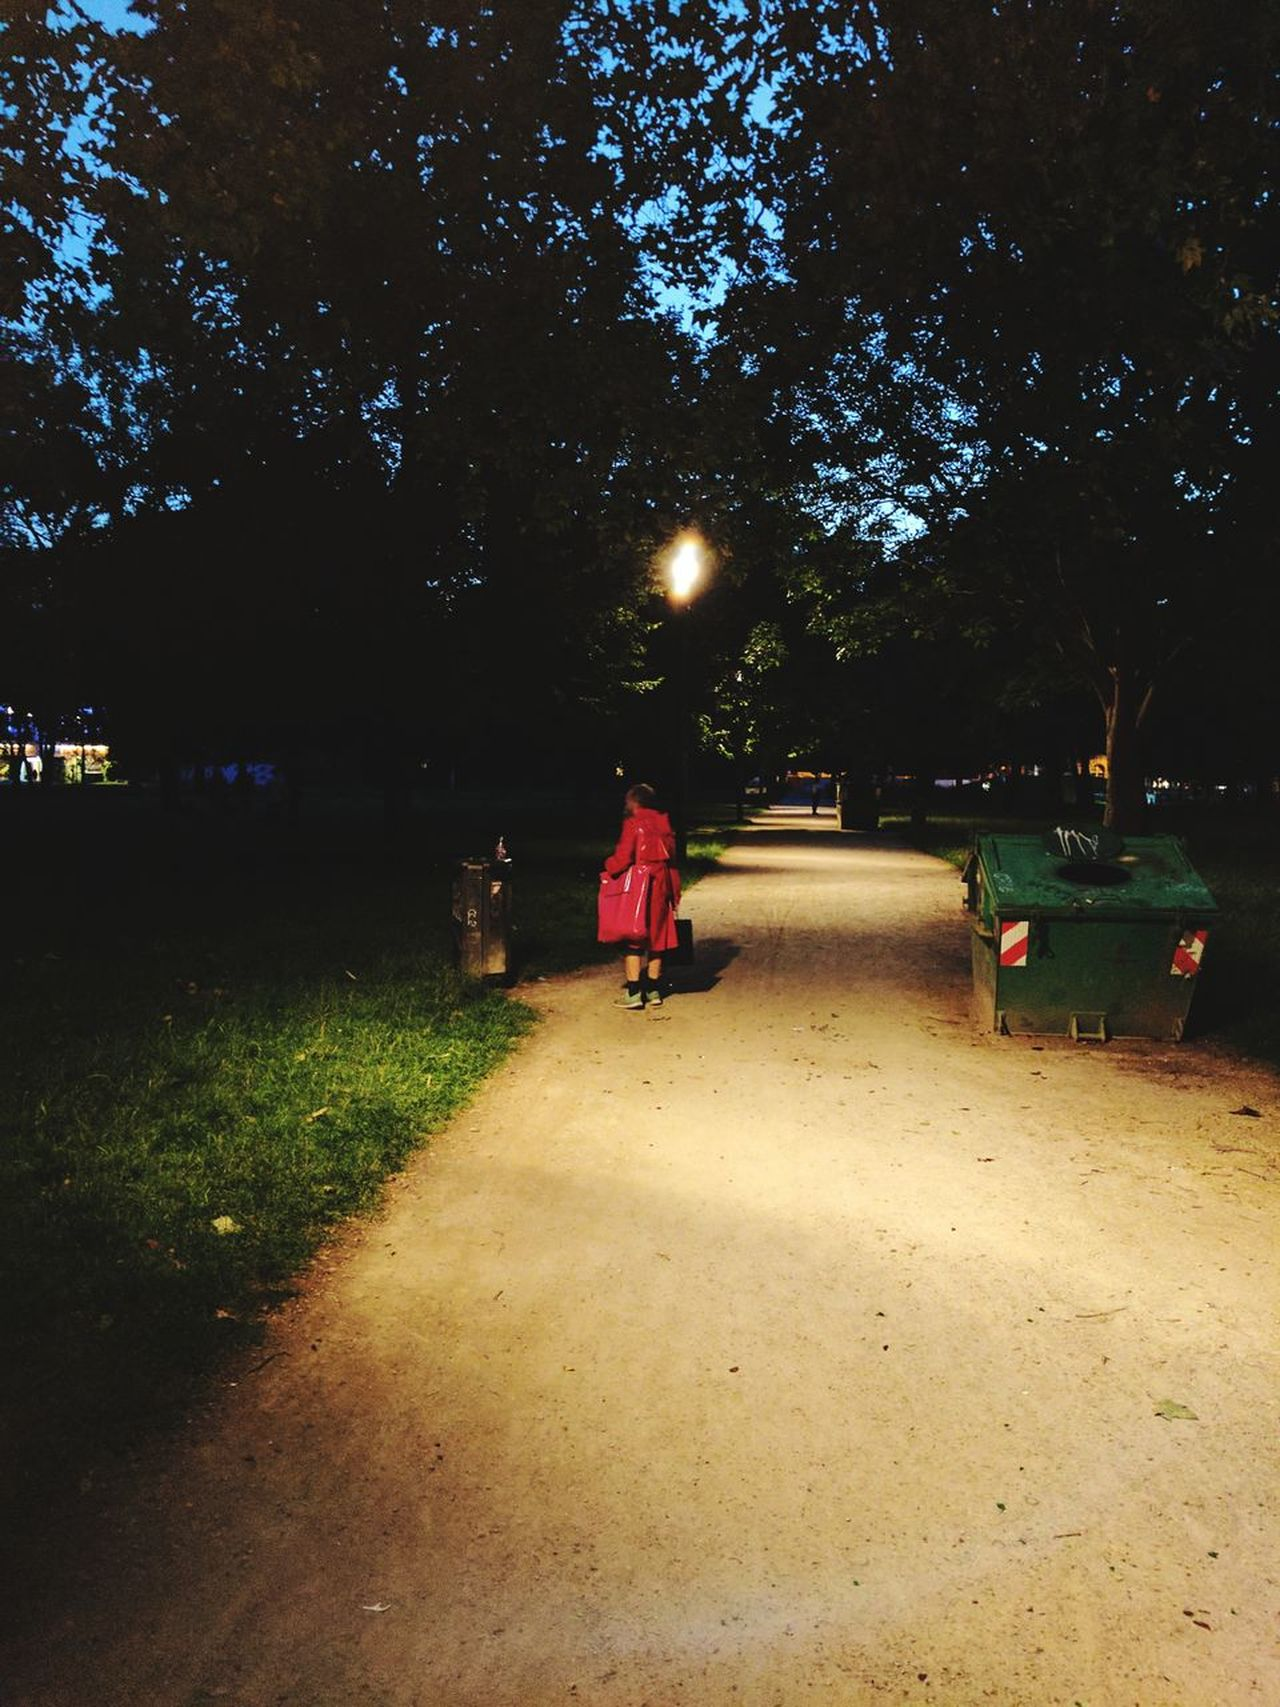 Red Riding Hood. Tree Rear View People Night Outdoors Adult One Person Men Real People Man Red Dress Latex